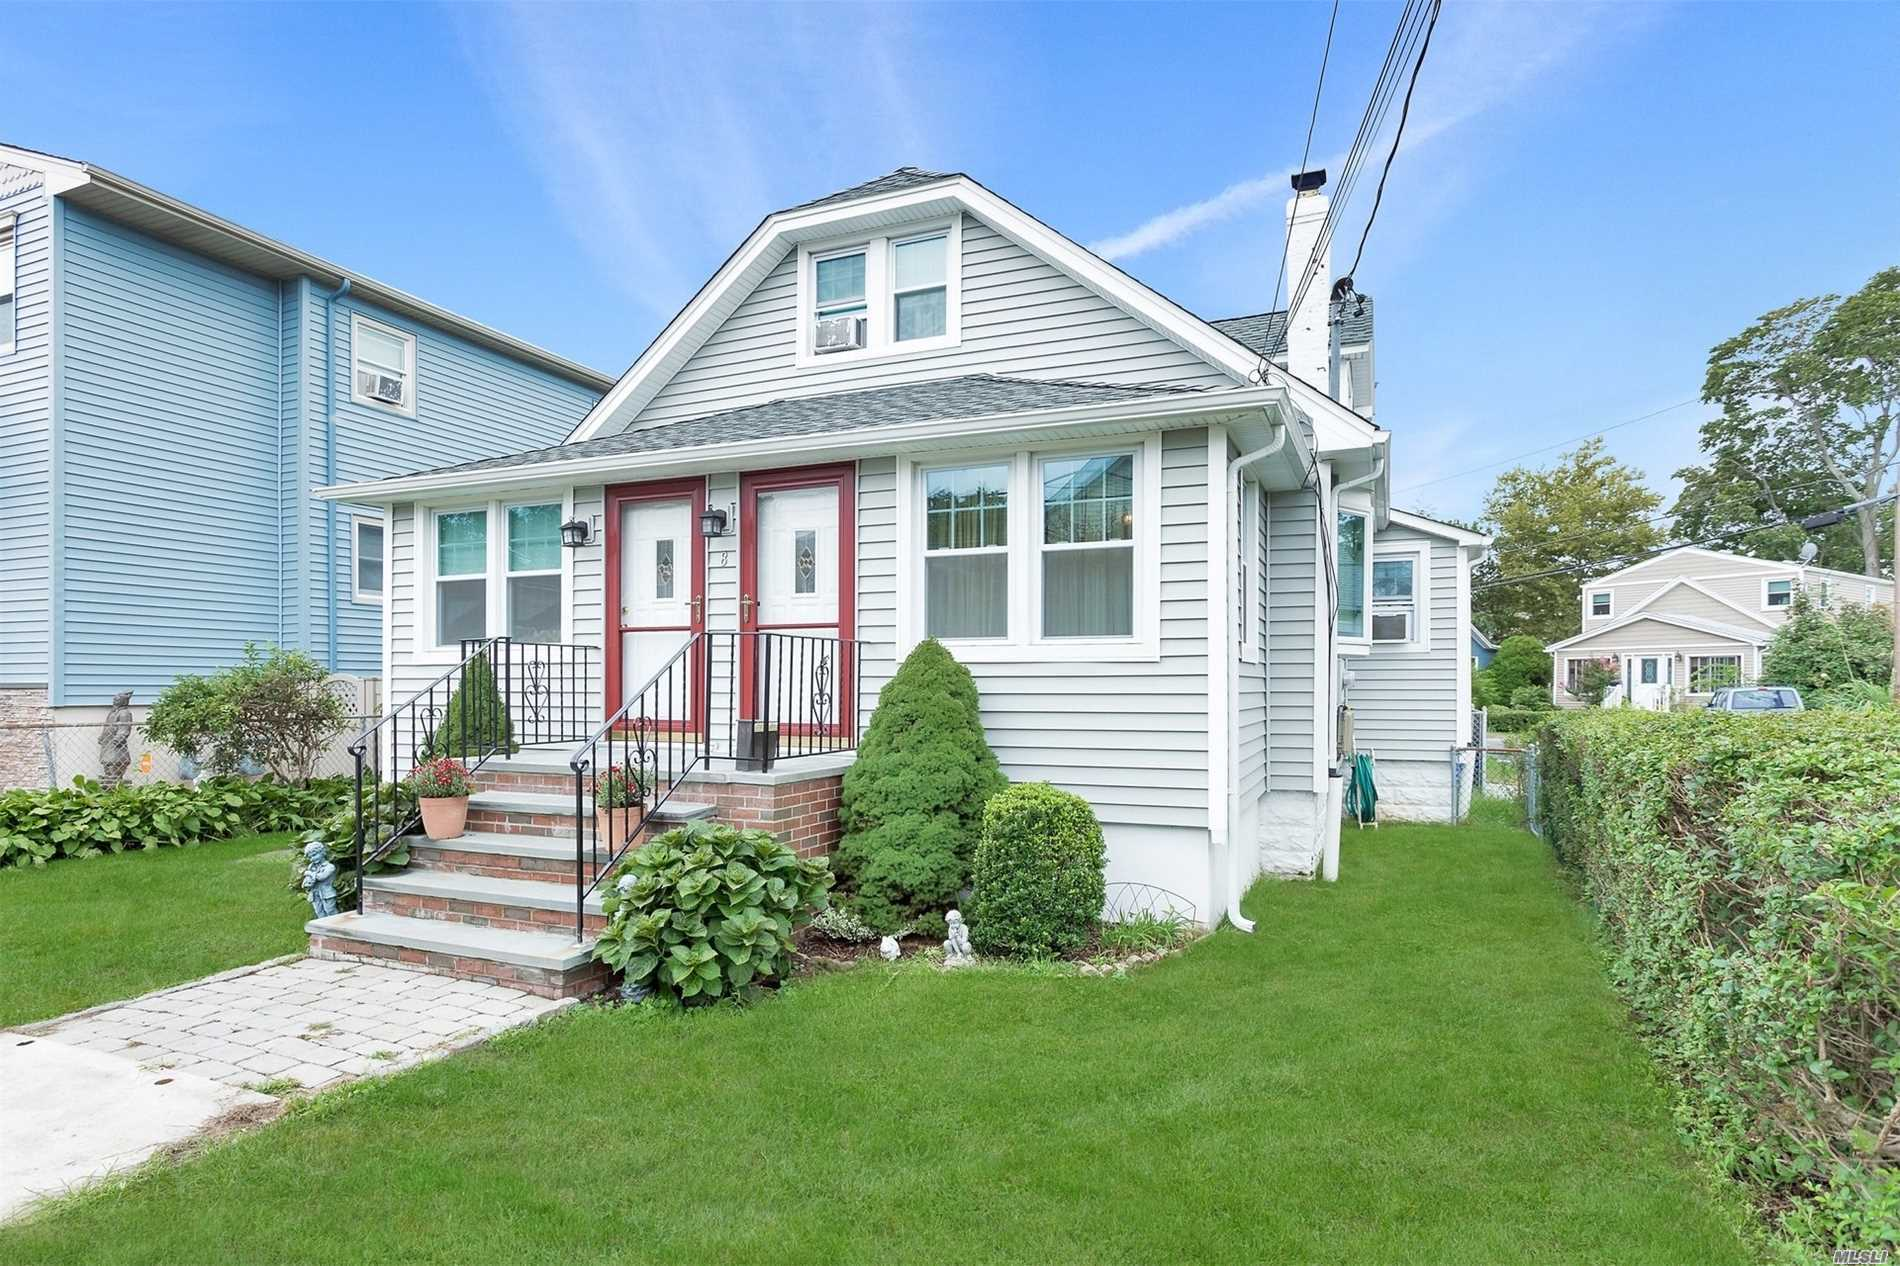 Great Investment! Legal 2-Family With New Roof, Siding, Windows, 2-Car Garage And Oversized Fenced Yard With Expansive Deck. Apt. 1 Is 1Br/1Bath All On One Floor. Apt. 2 Has 2Br/1.5 Baths. Two Decks, Gas Heating And Cooking. Stone's Throw To Beaches And Great Restaurants. Lvcsd Award Winning Schools.